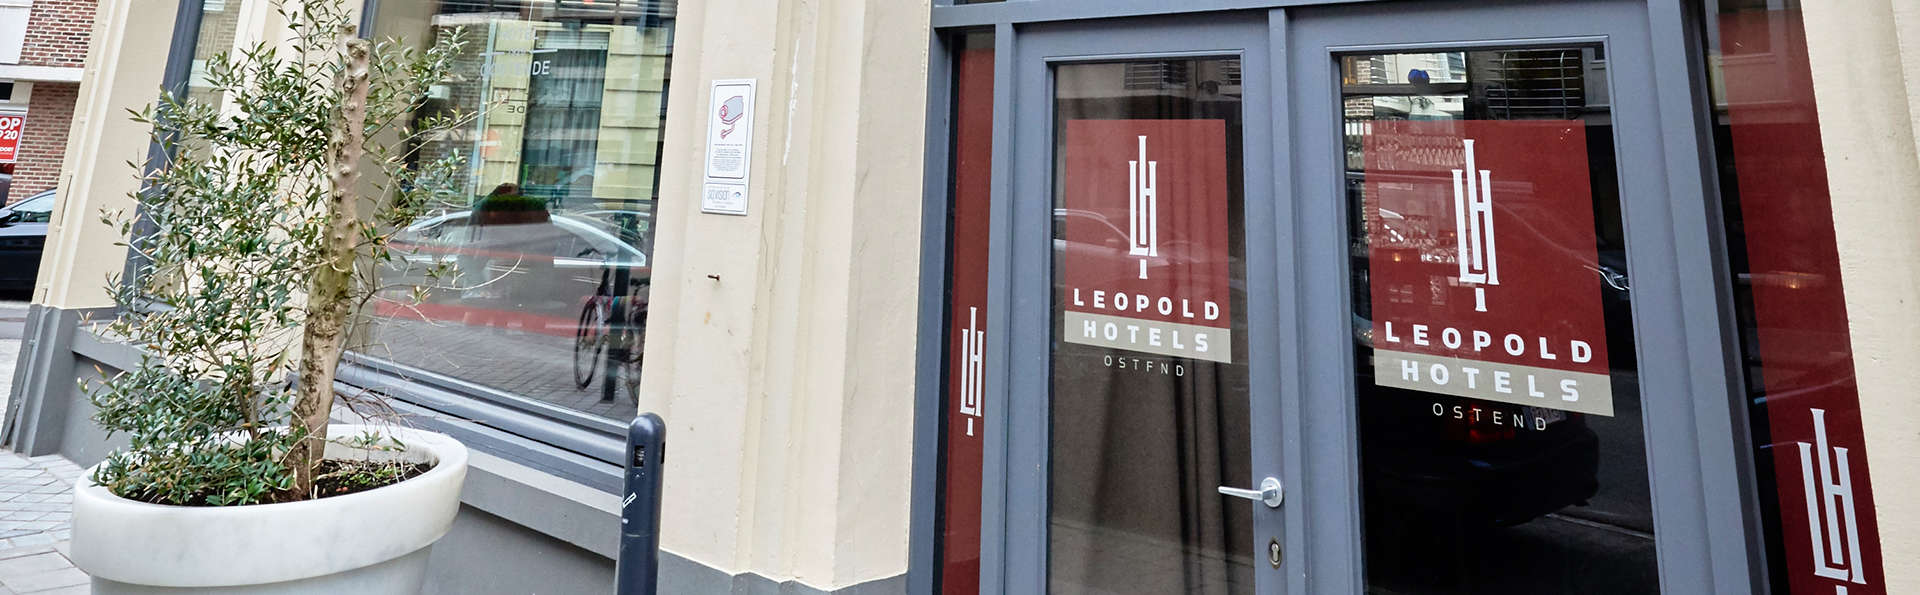 Leopold Hotel Ostend - edit_new_entrance.jpg